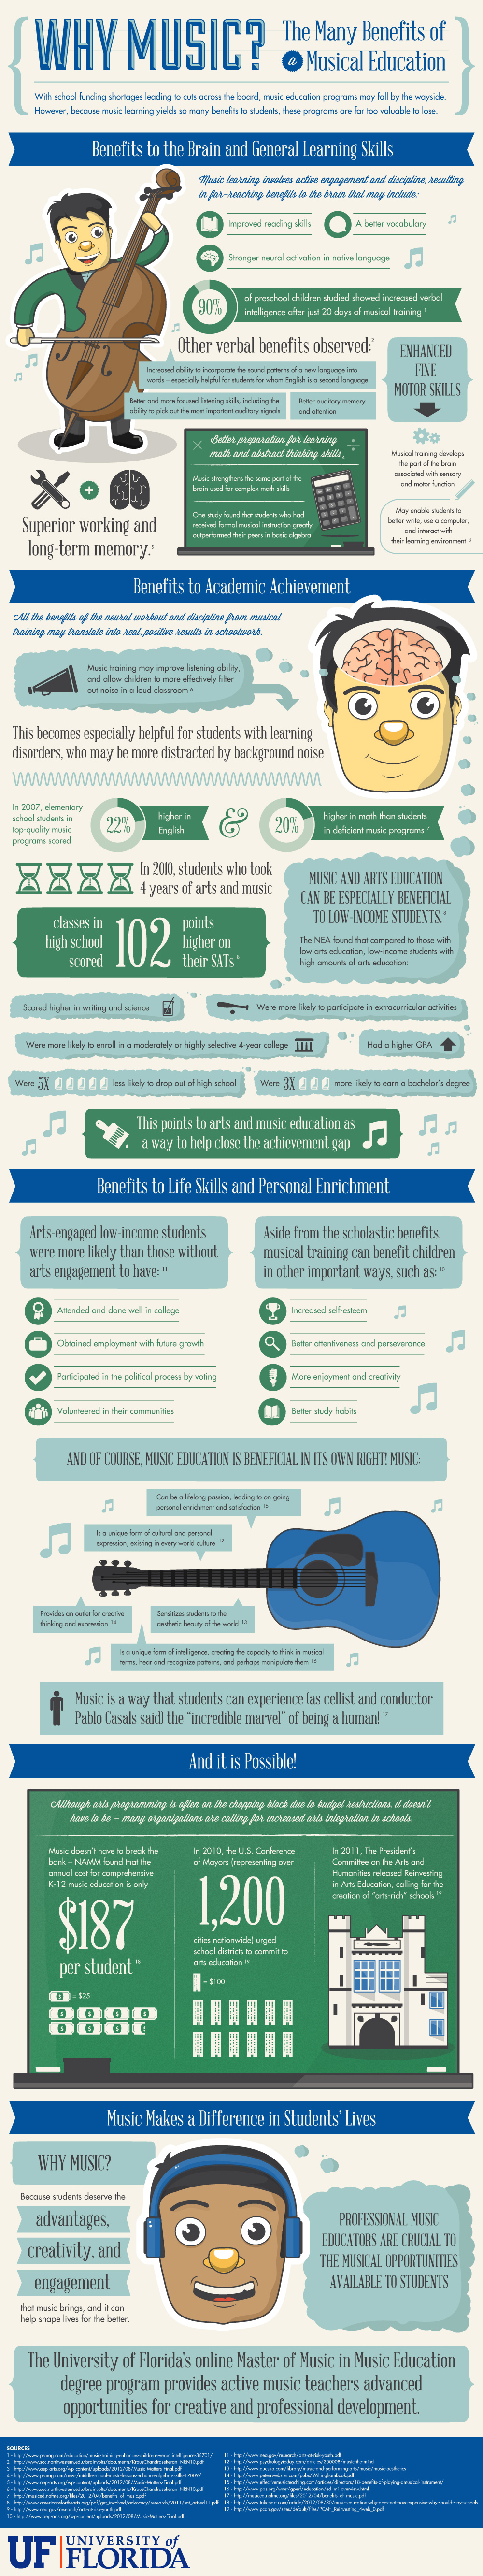 Why Music? The Benefits of a Musical Education